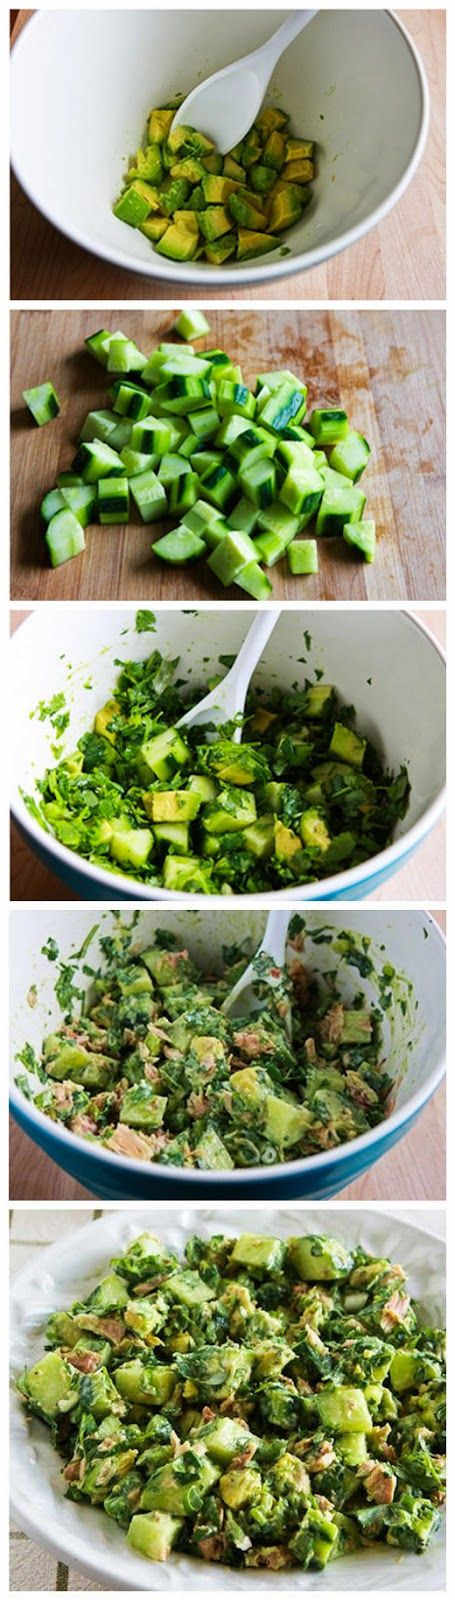 Cucumber Avocado Salad with Tuna, Cilantro, and Lime - yummykey